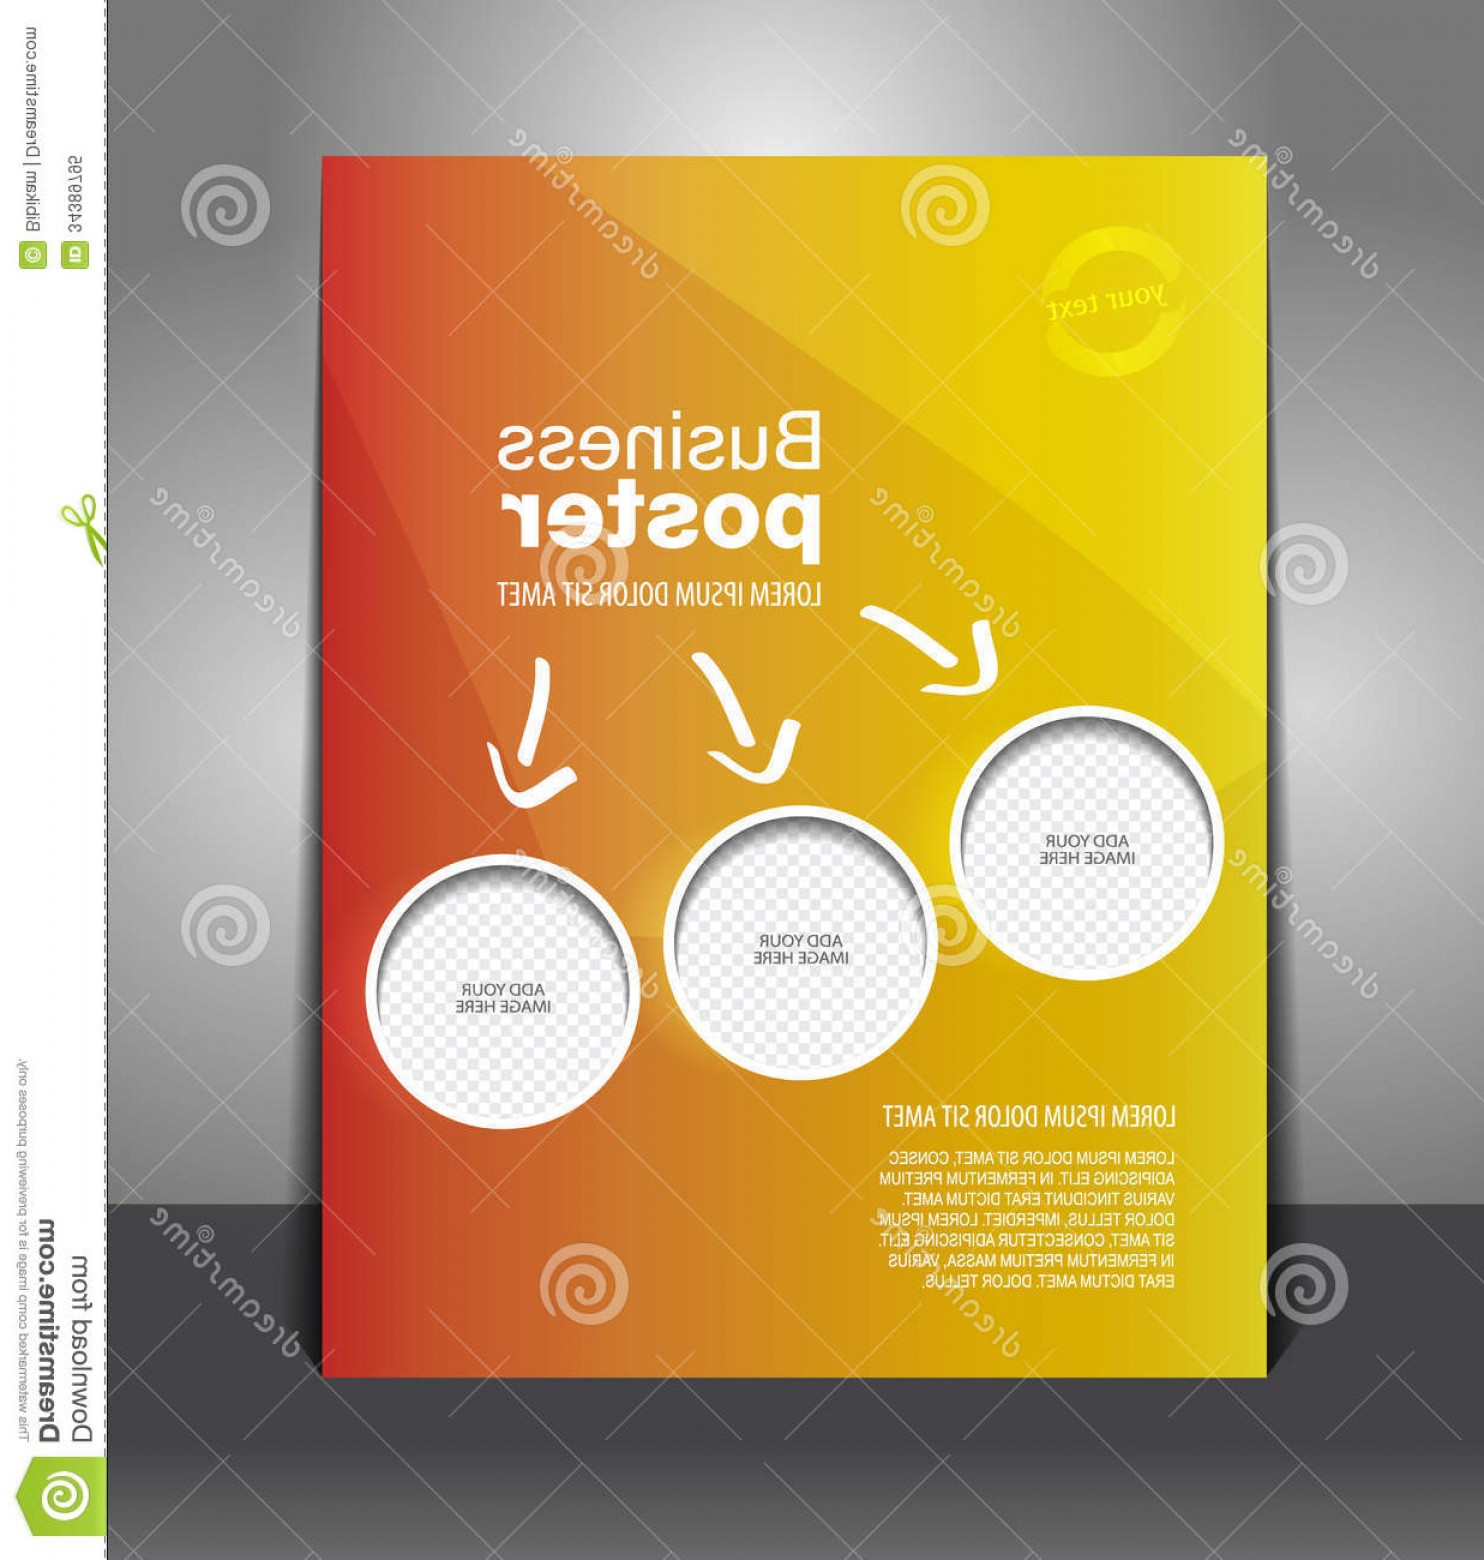 Vector Posters Design: Royalty Free Stock Photo Vector Design Color Flyer Place Image Magazine Cover Poster Template Image